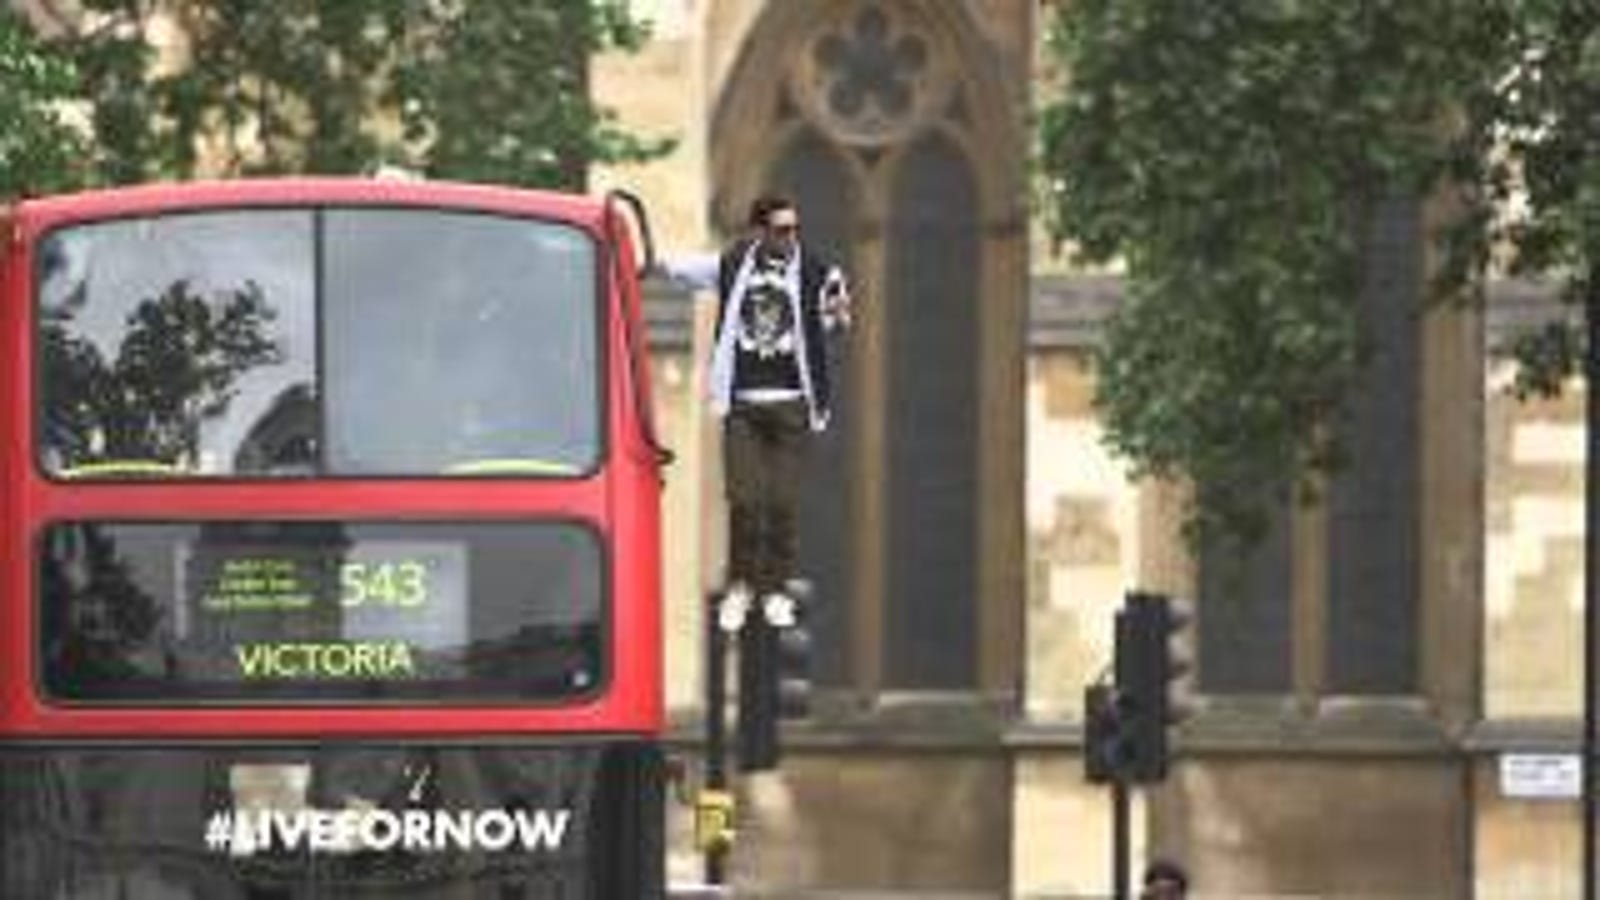 Watch a Guy Freak People Out By Floating in the Air on a Moving Bus